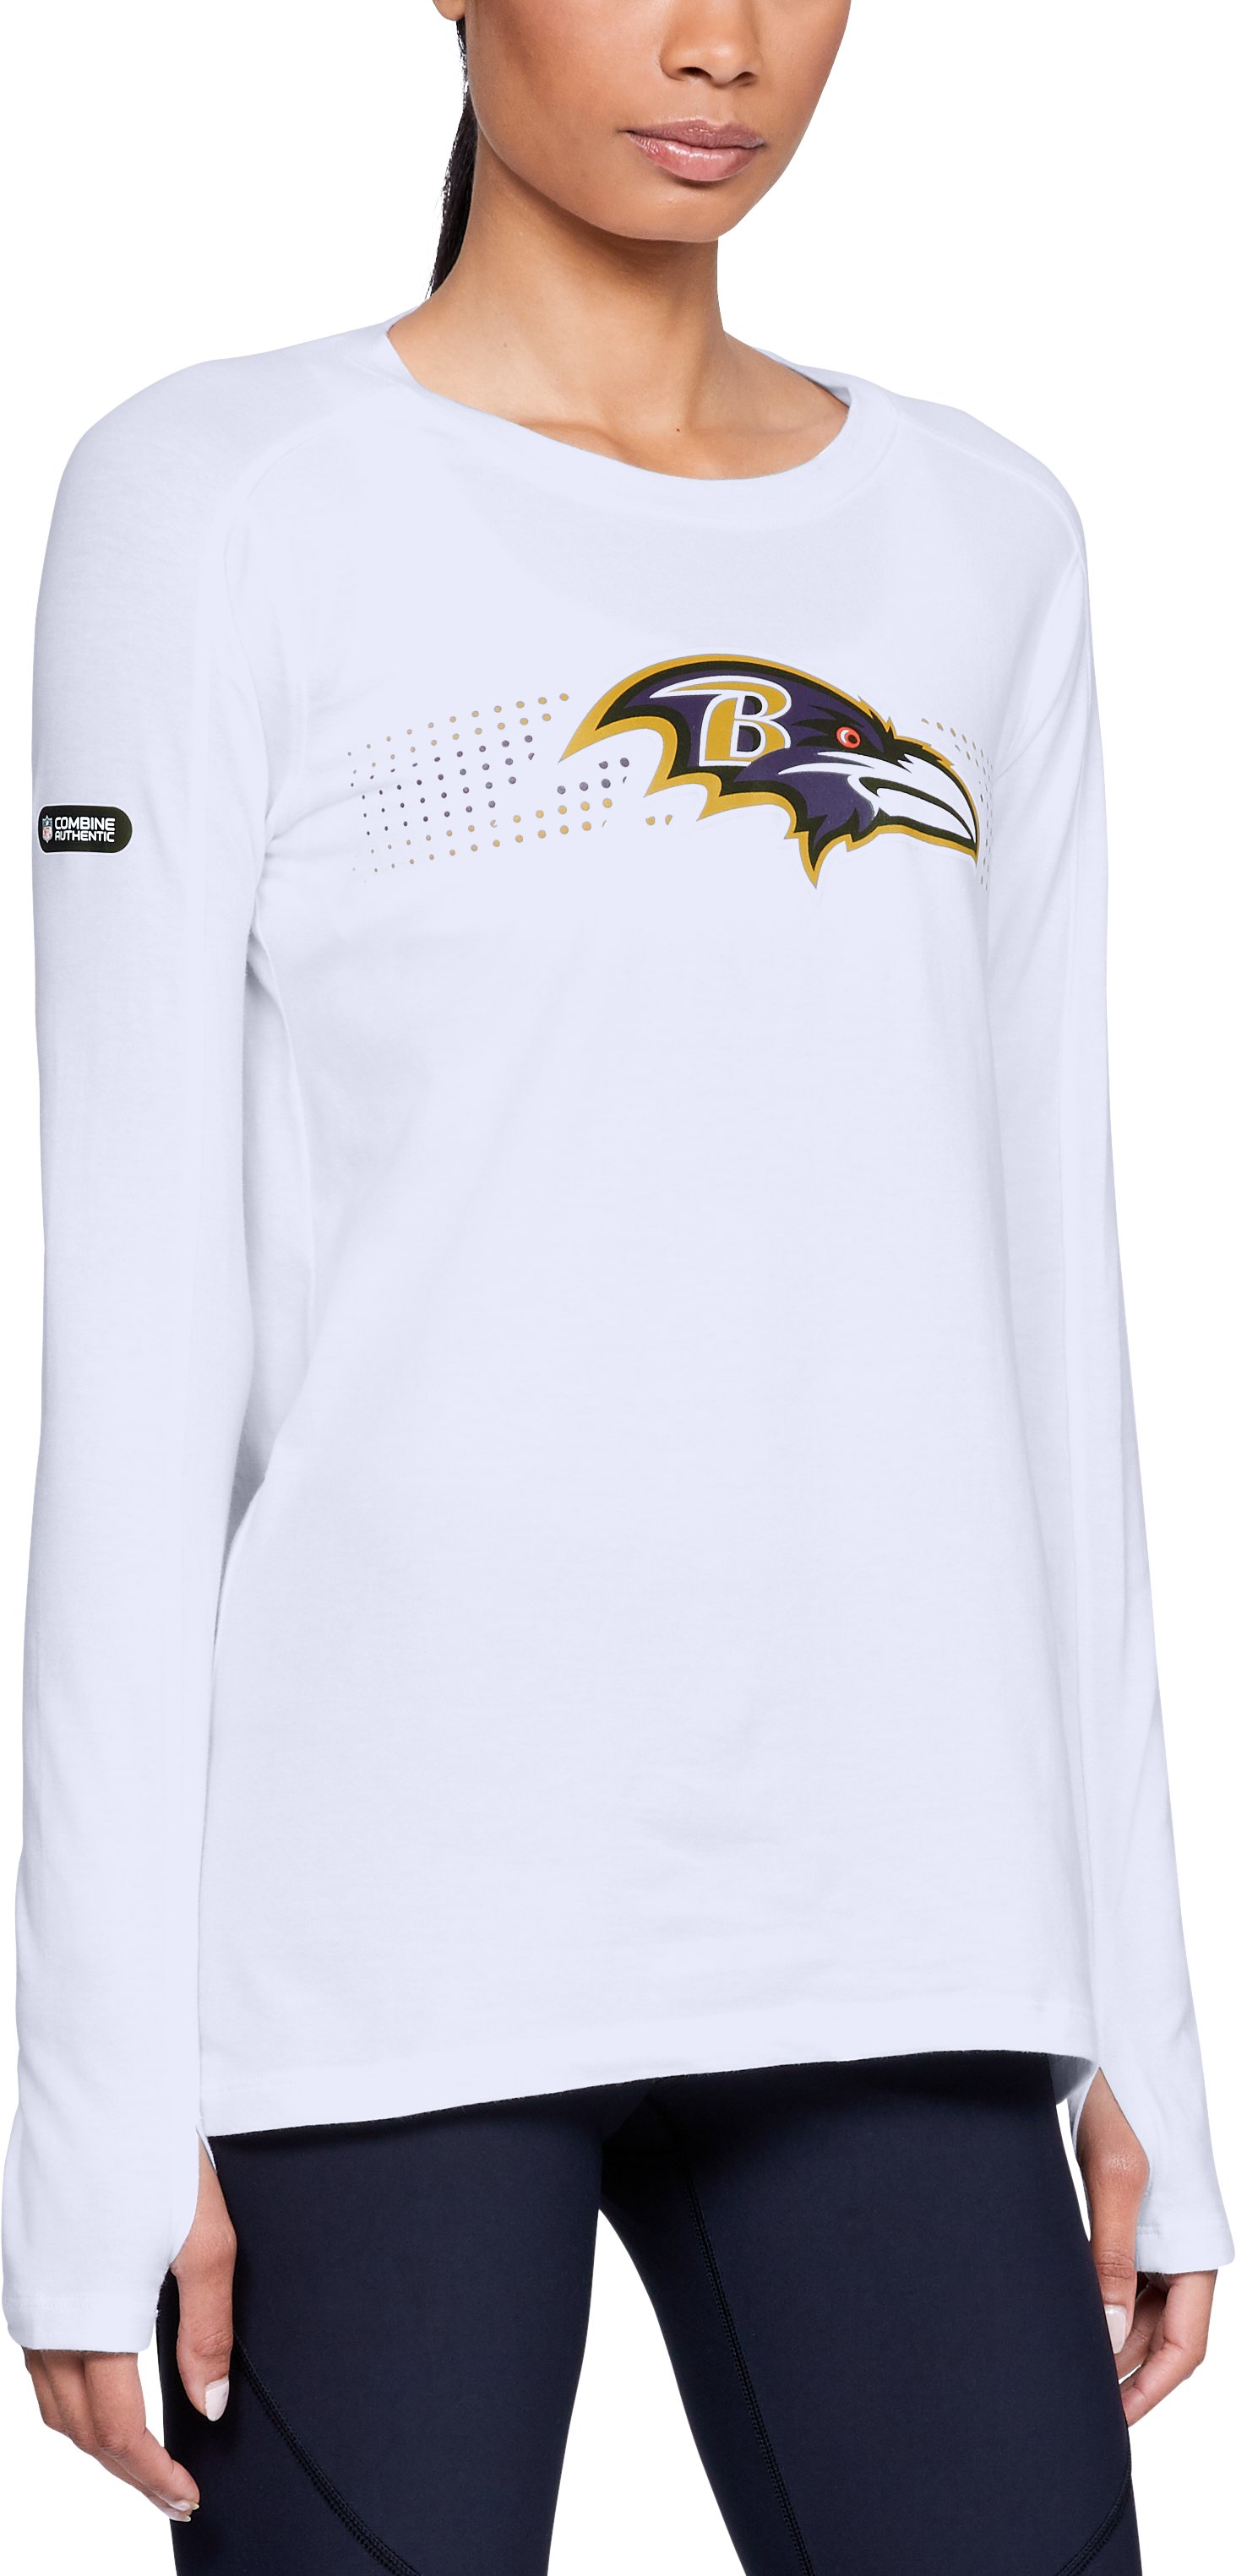 Women's NFL Combine Authentic Dot Stripe Long Sleeve T-Shirt 12 Colors $50.00